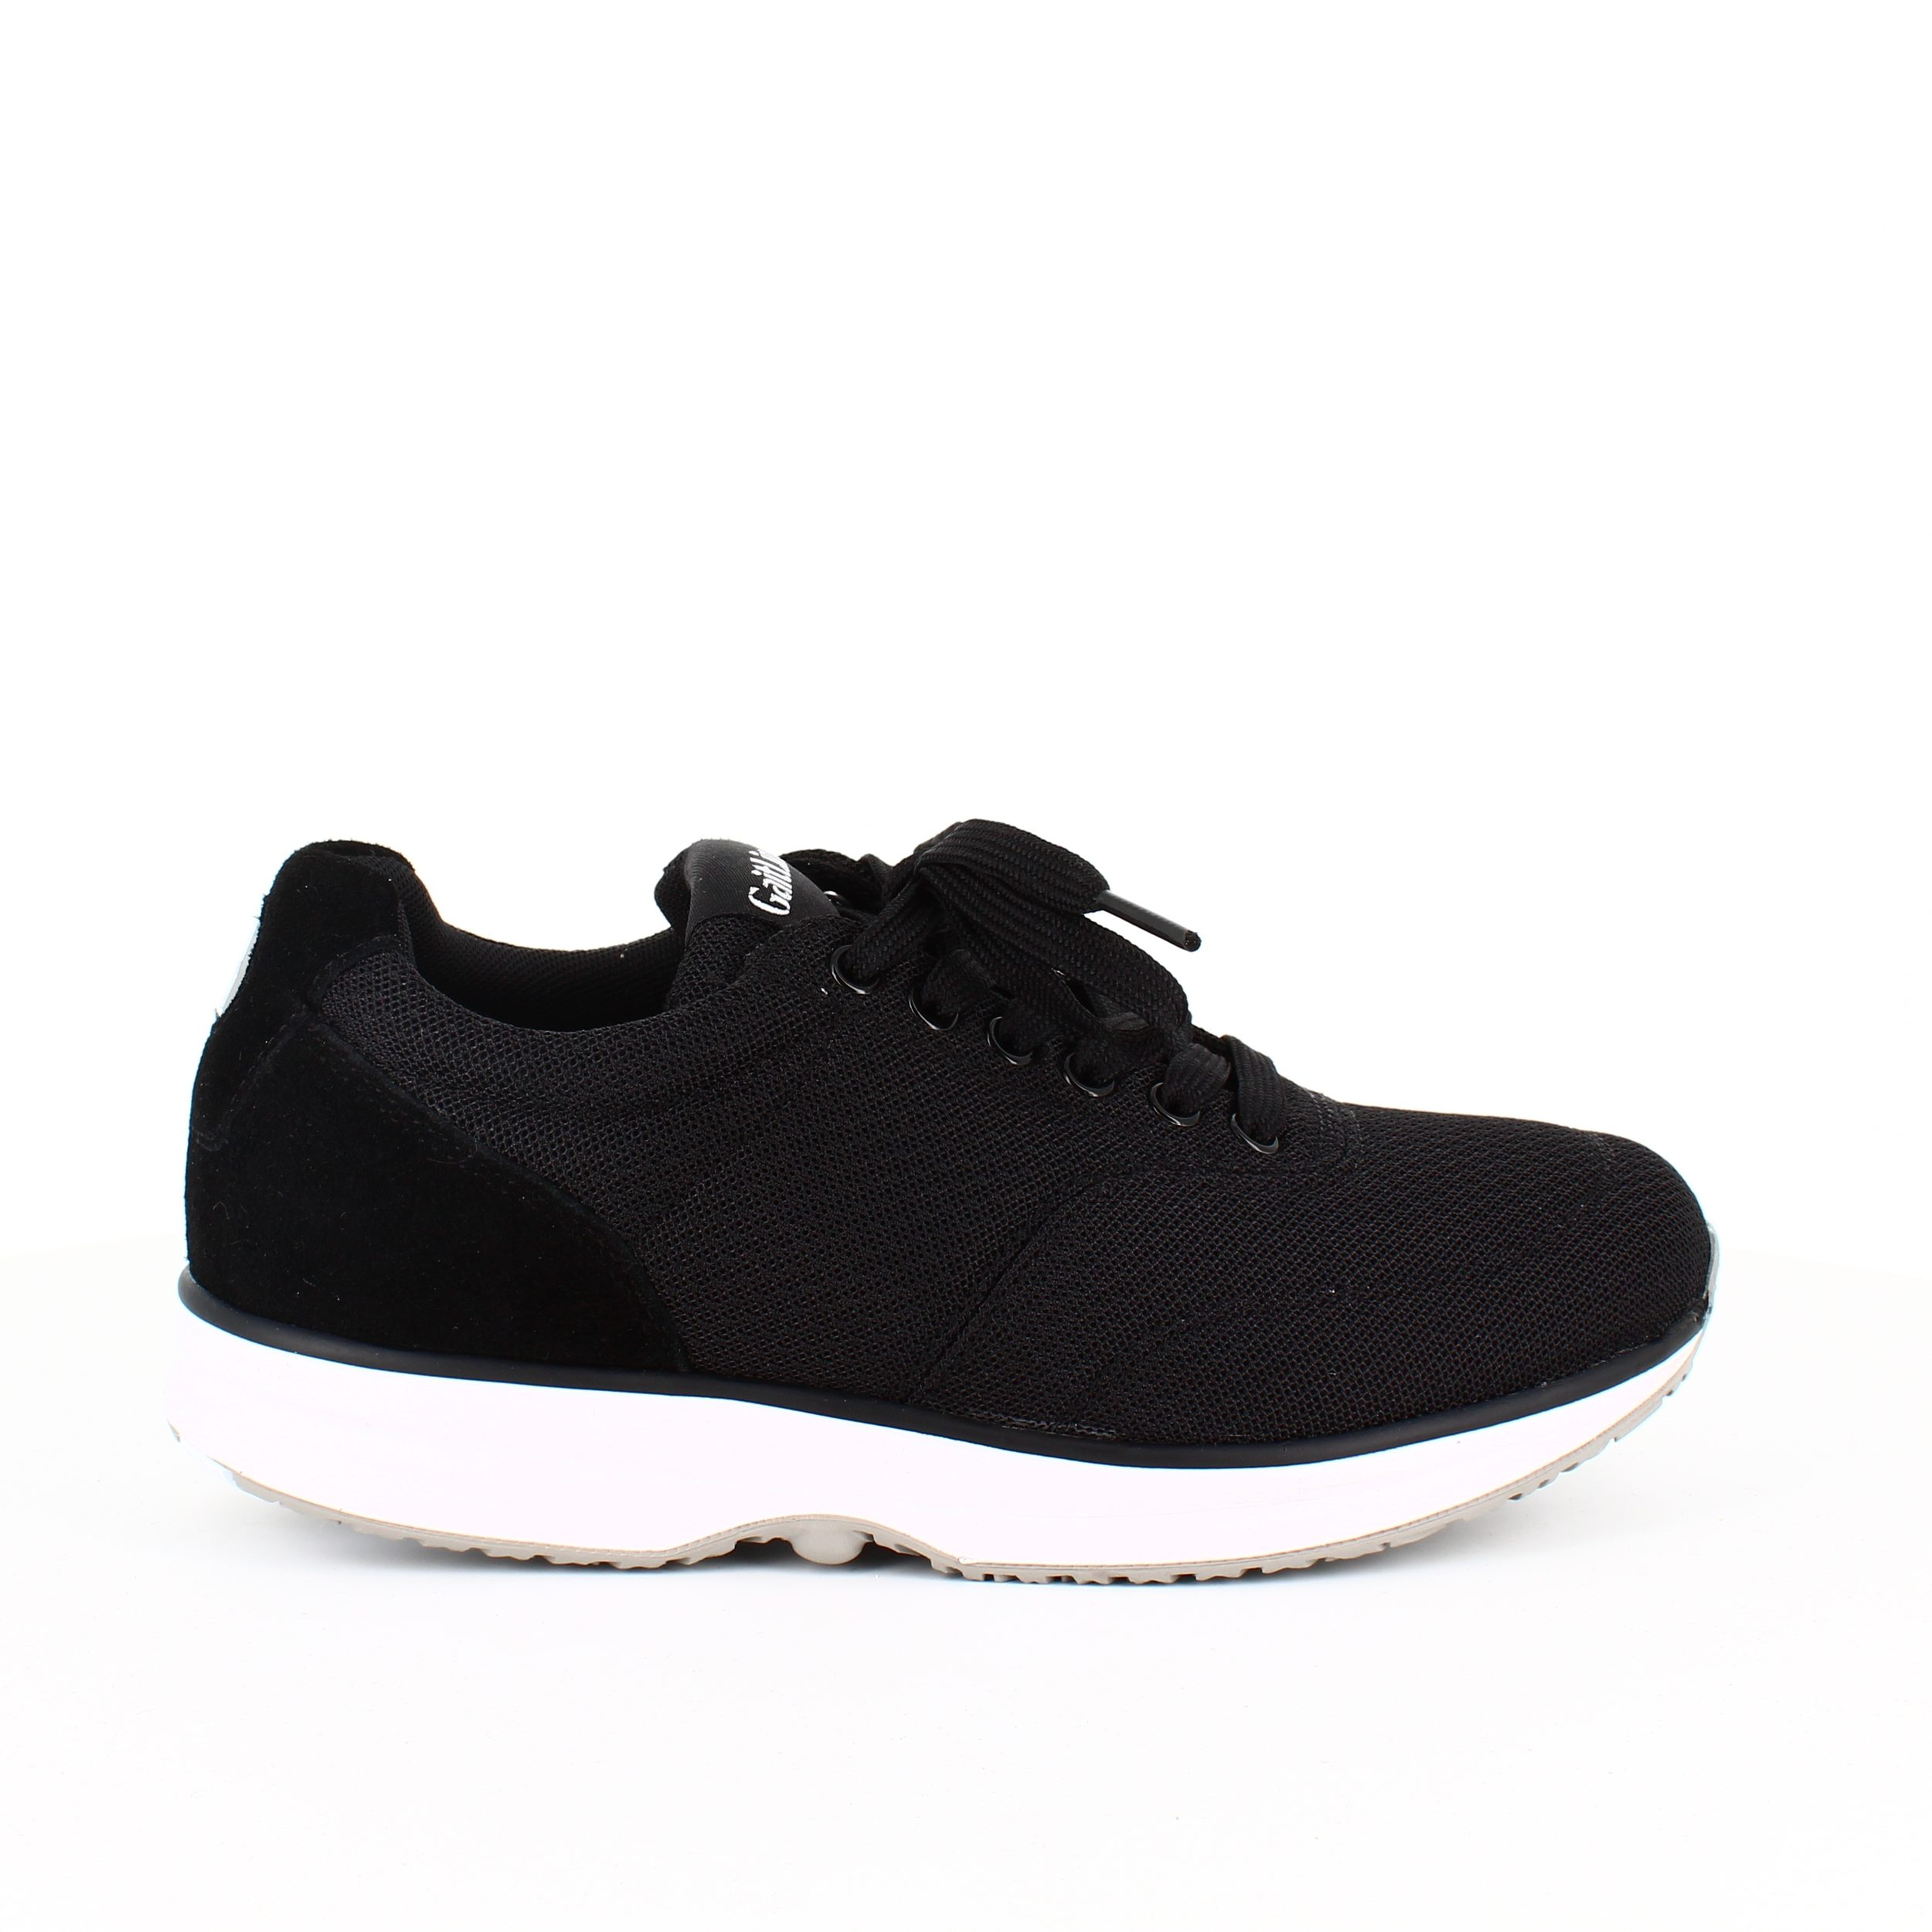 Image of   Flotte Sorte sneakers fra Gaitline - 39